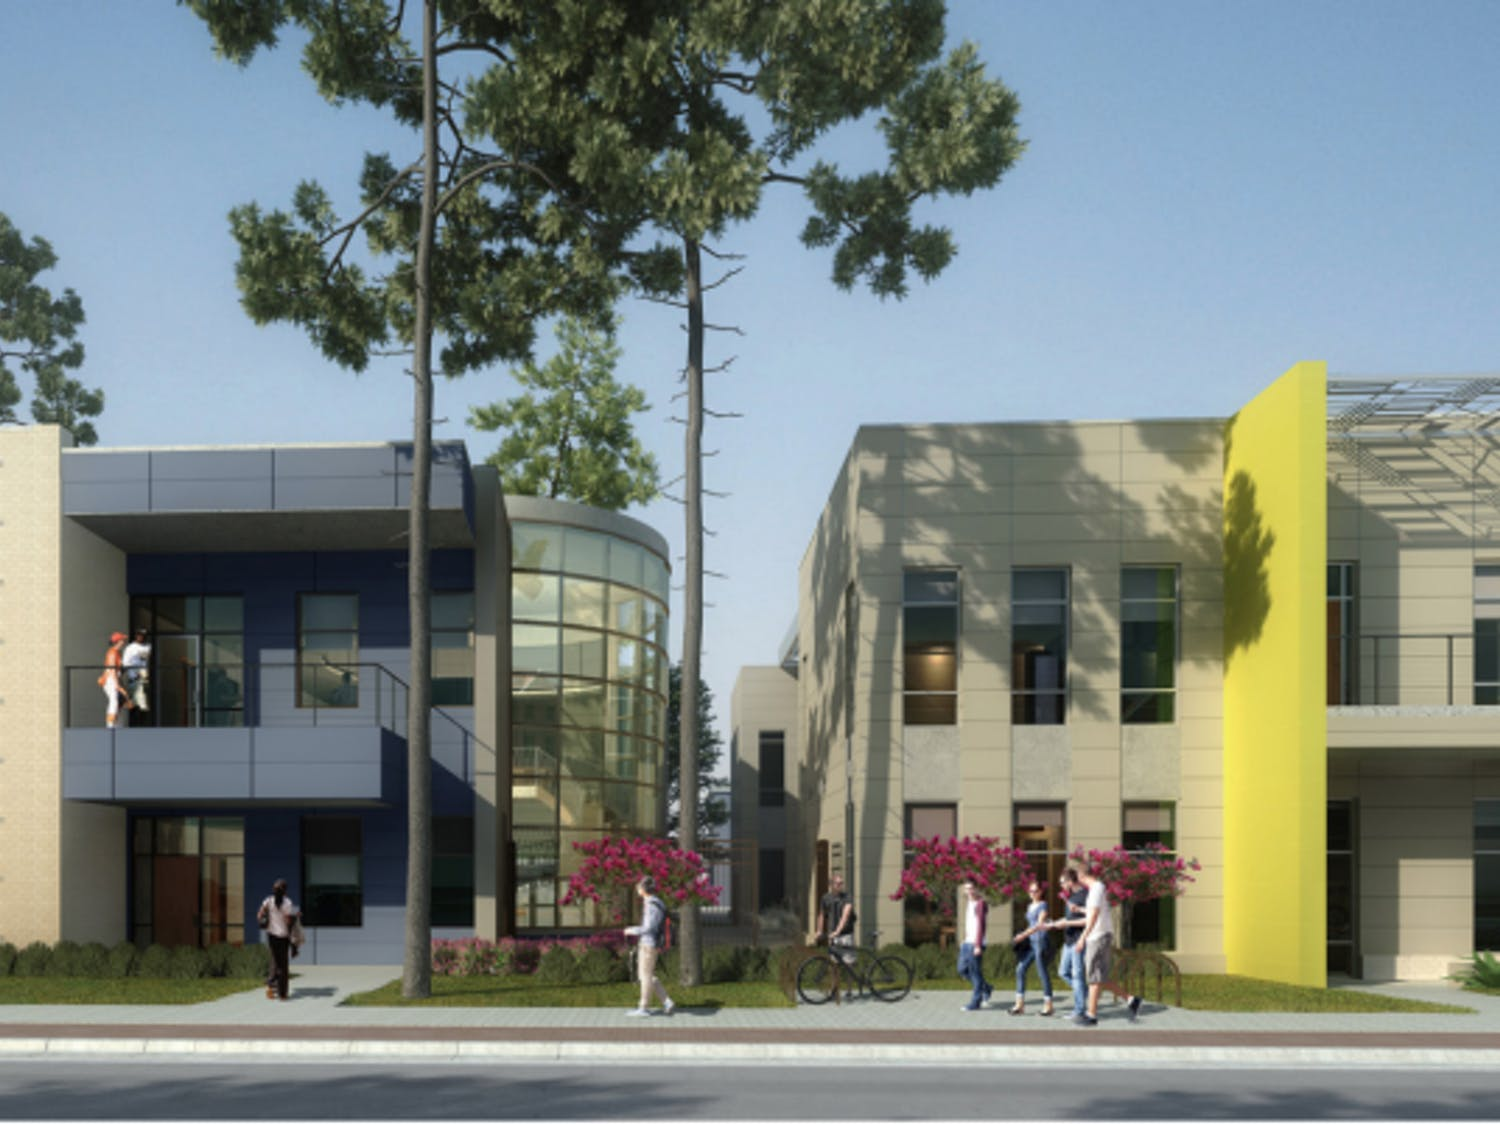 Above are the projected exterior designs for the IBC (left) and La Casita.